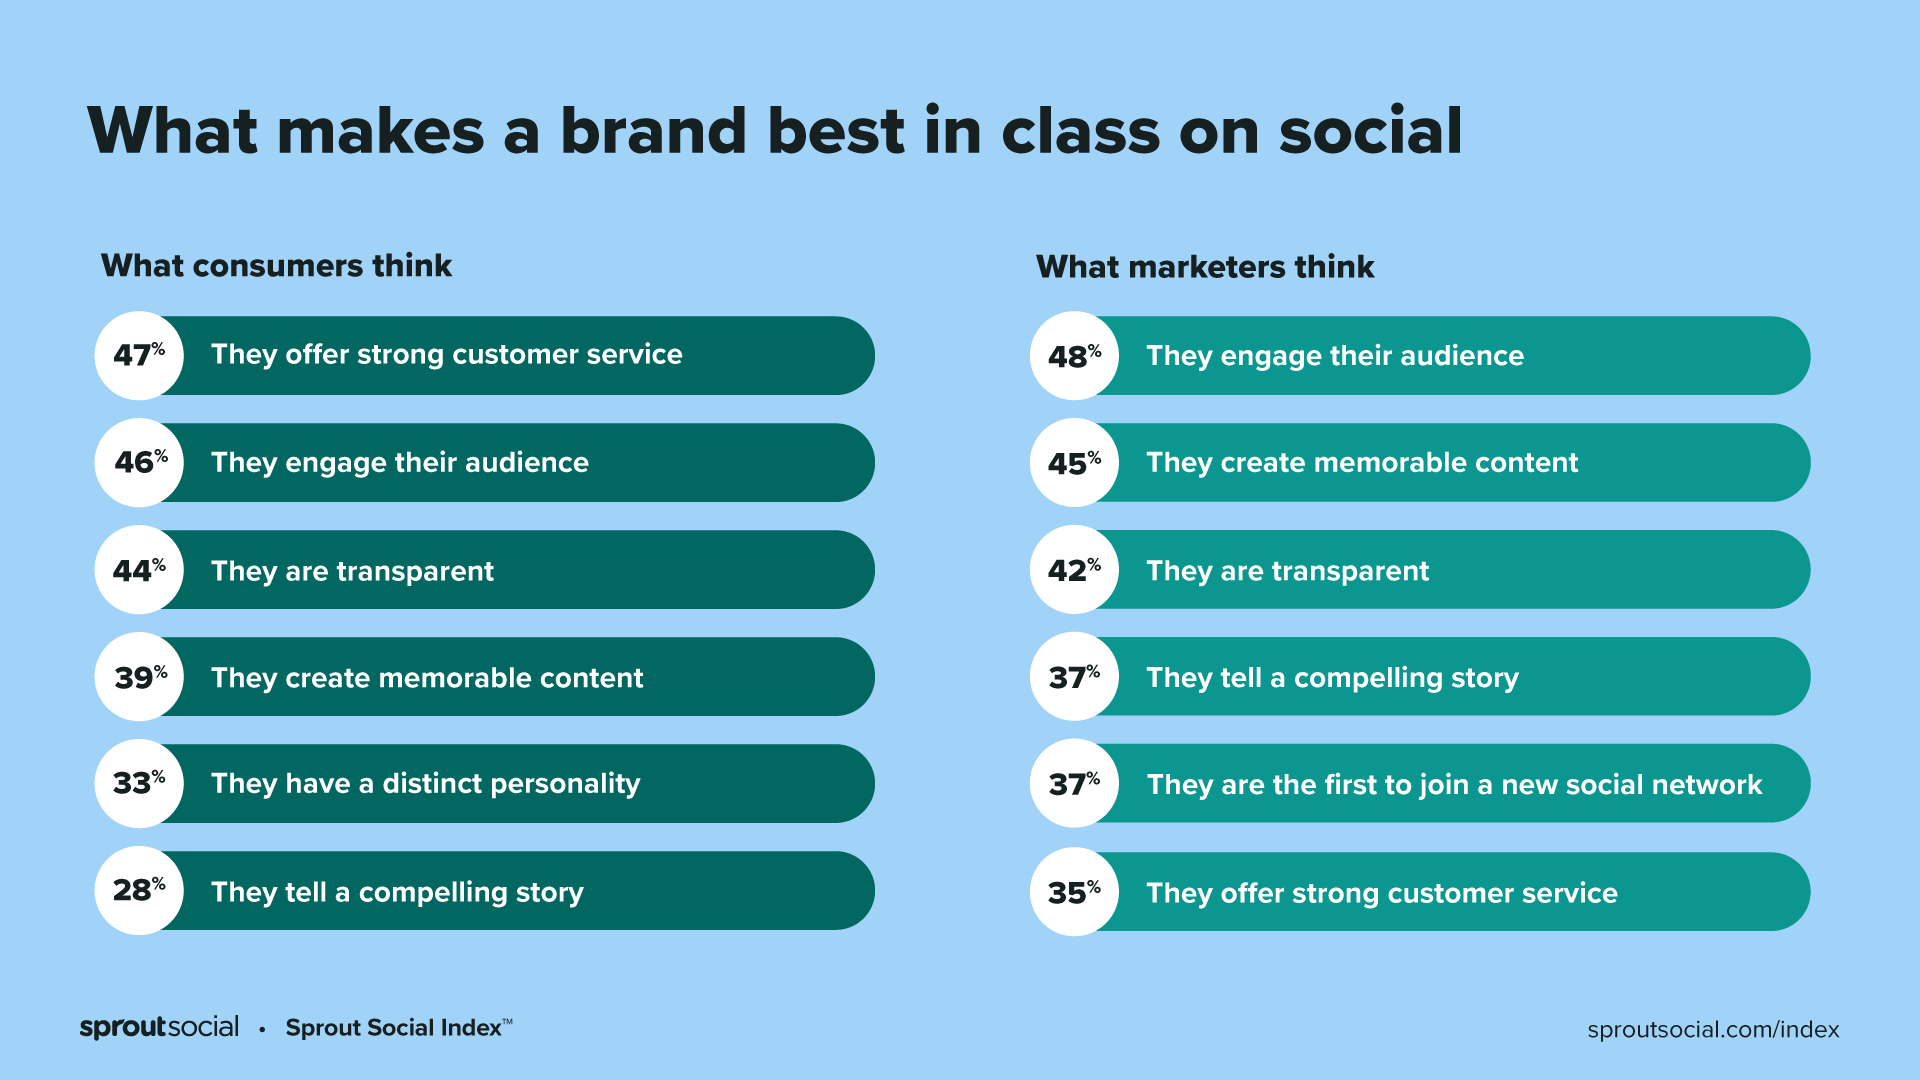 A chart describing what consumers and marketers believe make a brand best-in-class on social. Consumers rank customer service and engagement highest.